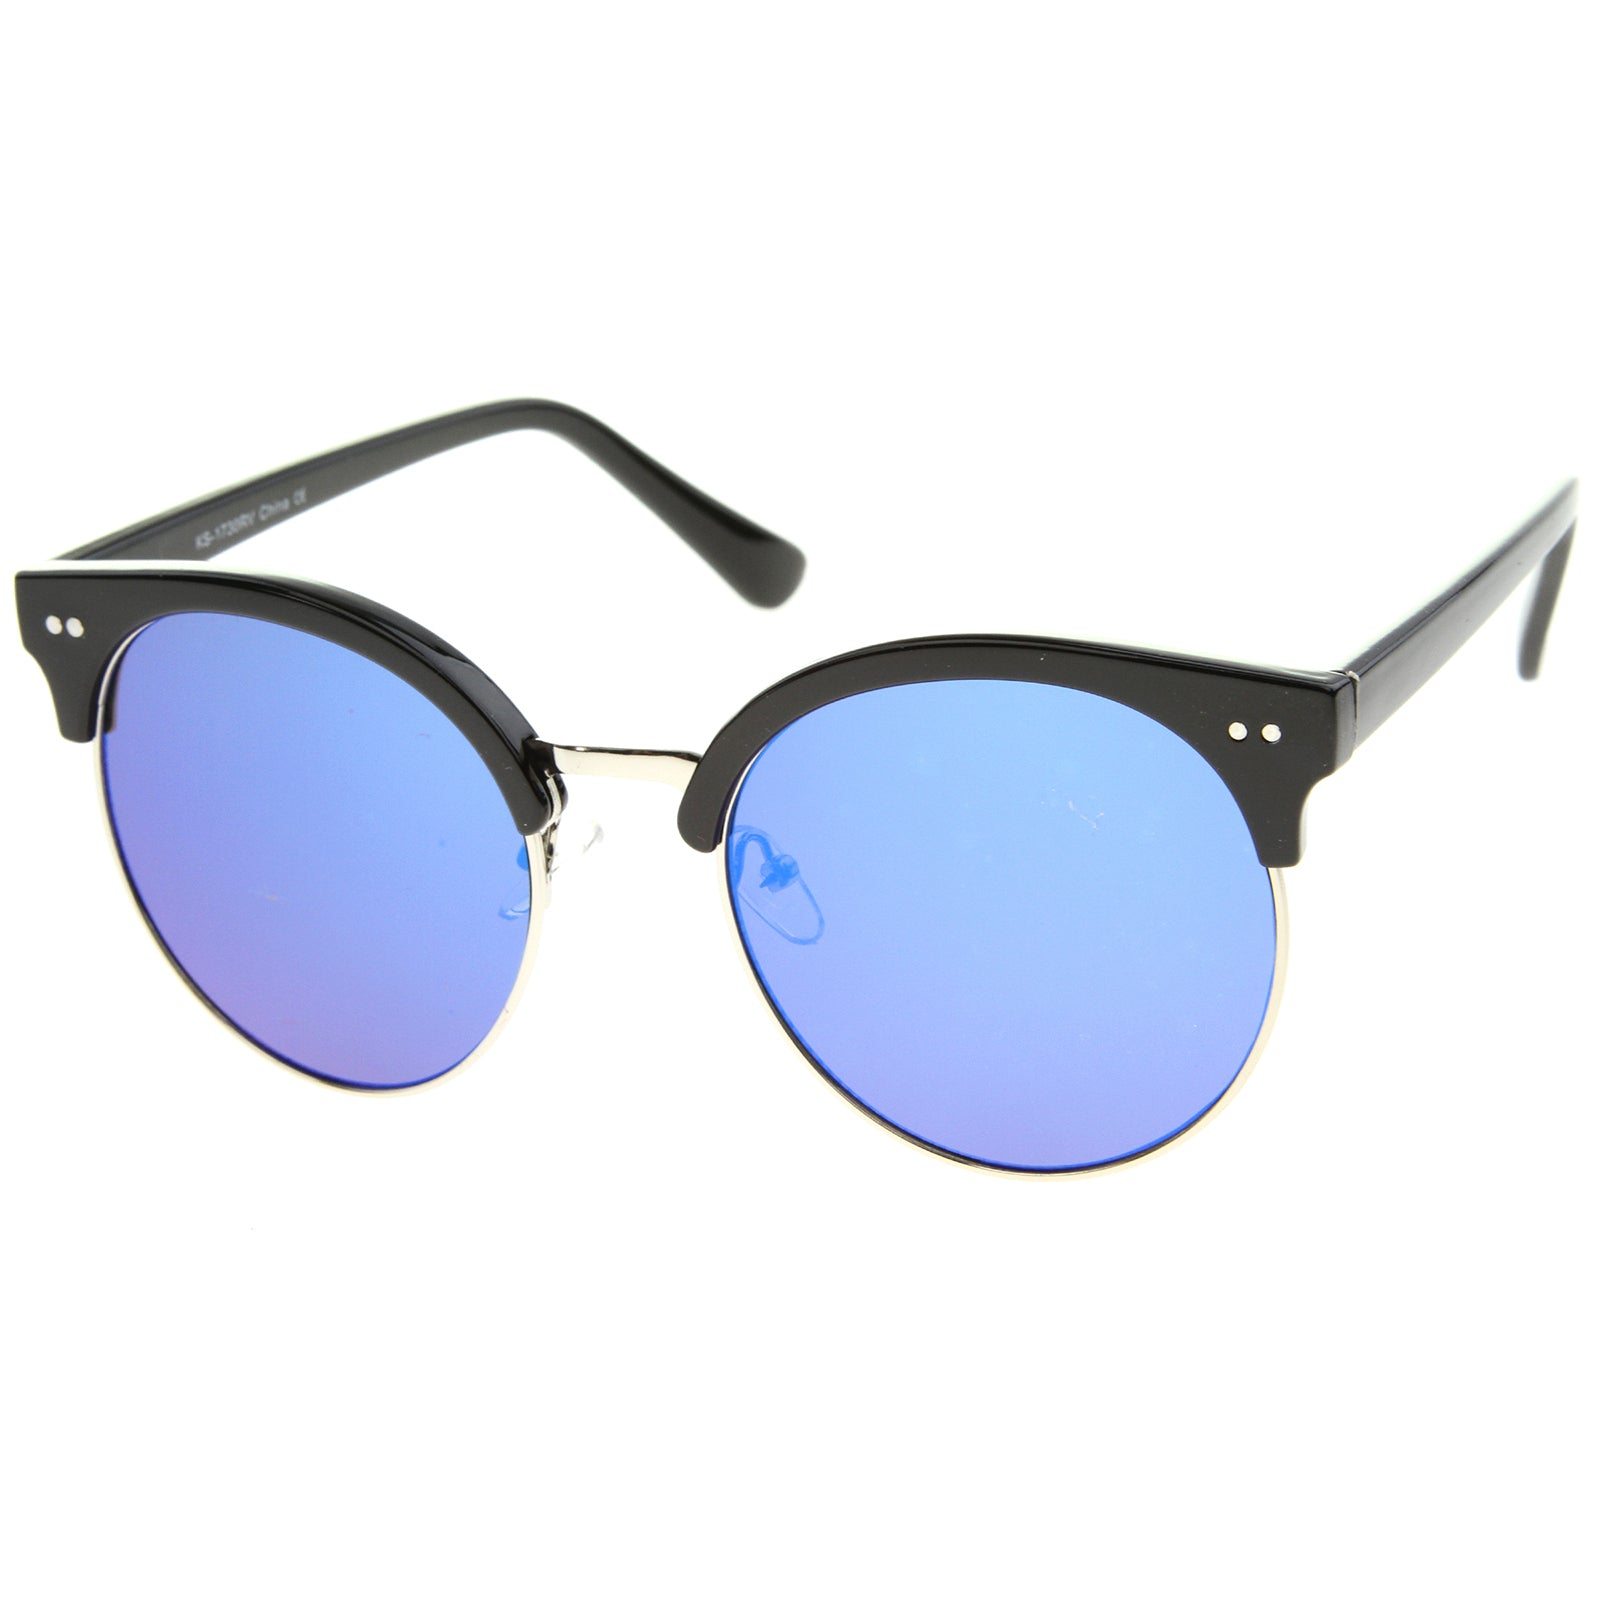 Womens Oversized Sunglasses With UV400 Protected Mirrored Lens - sunglass.la - 10